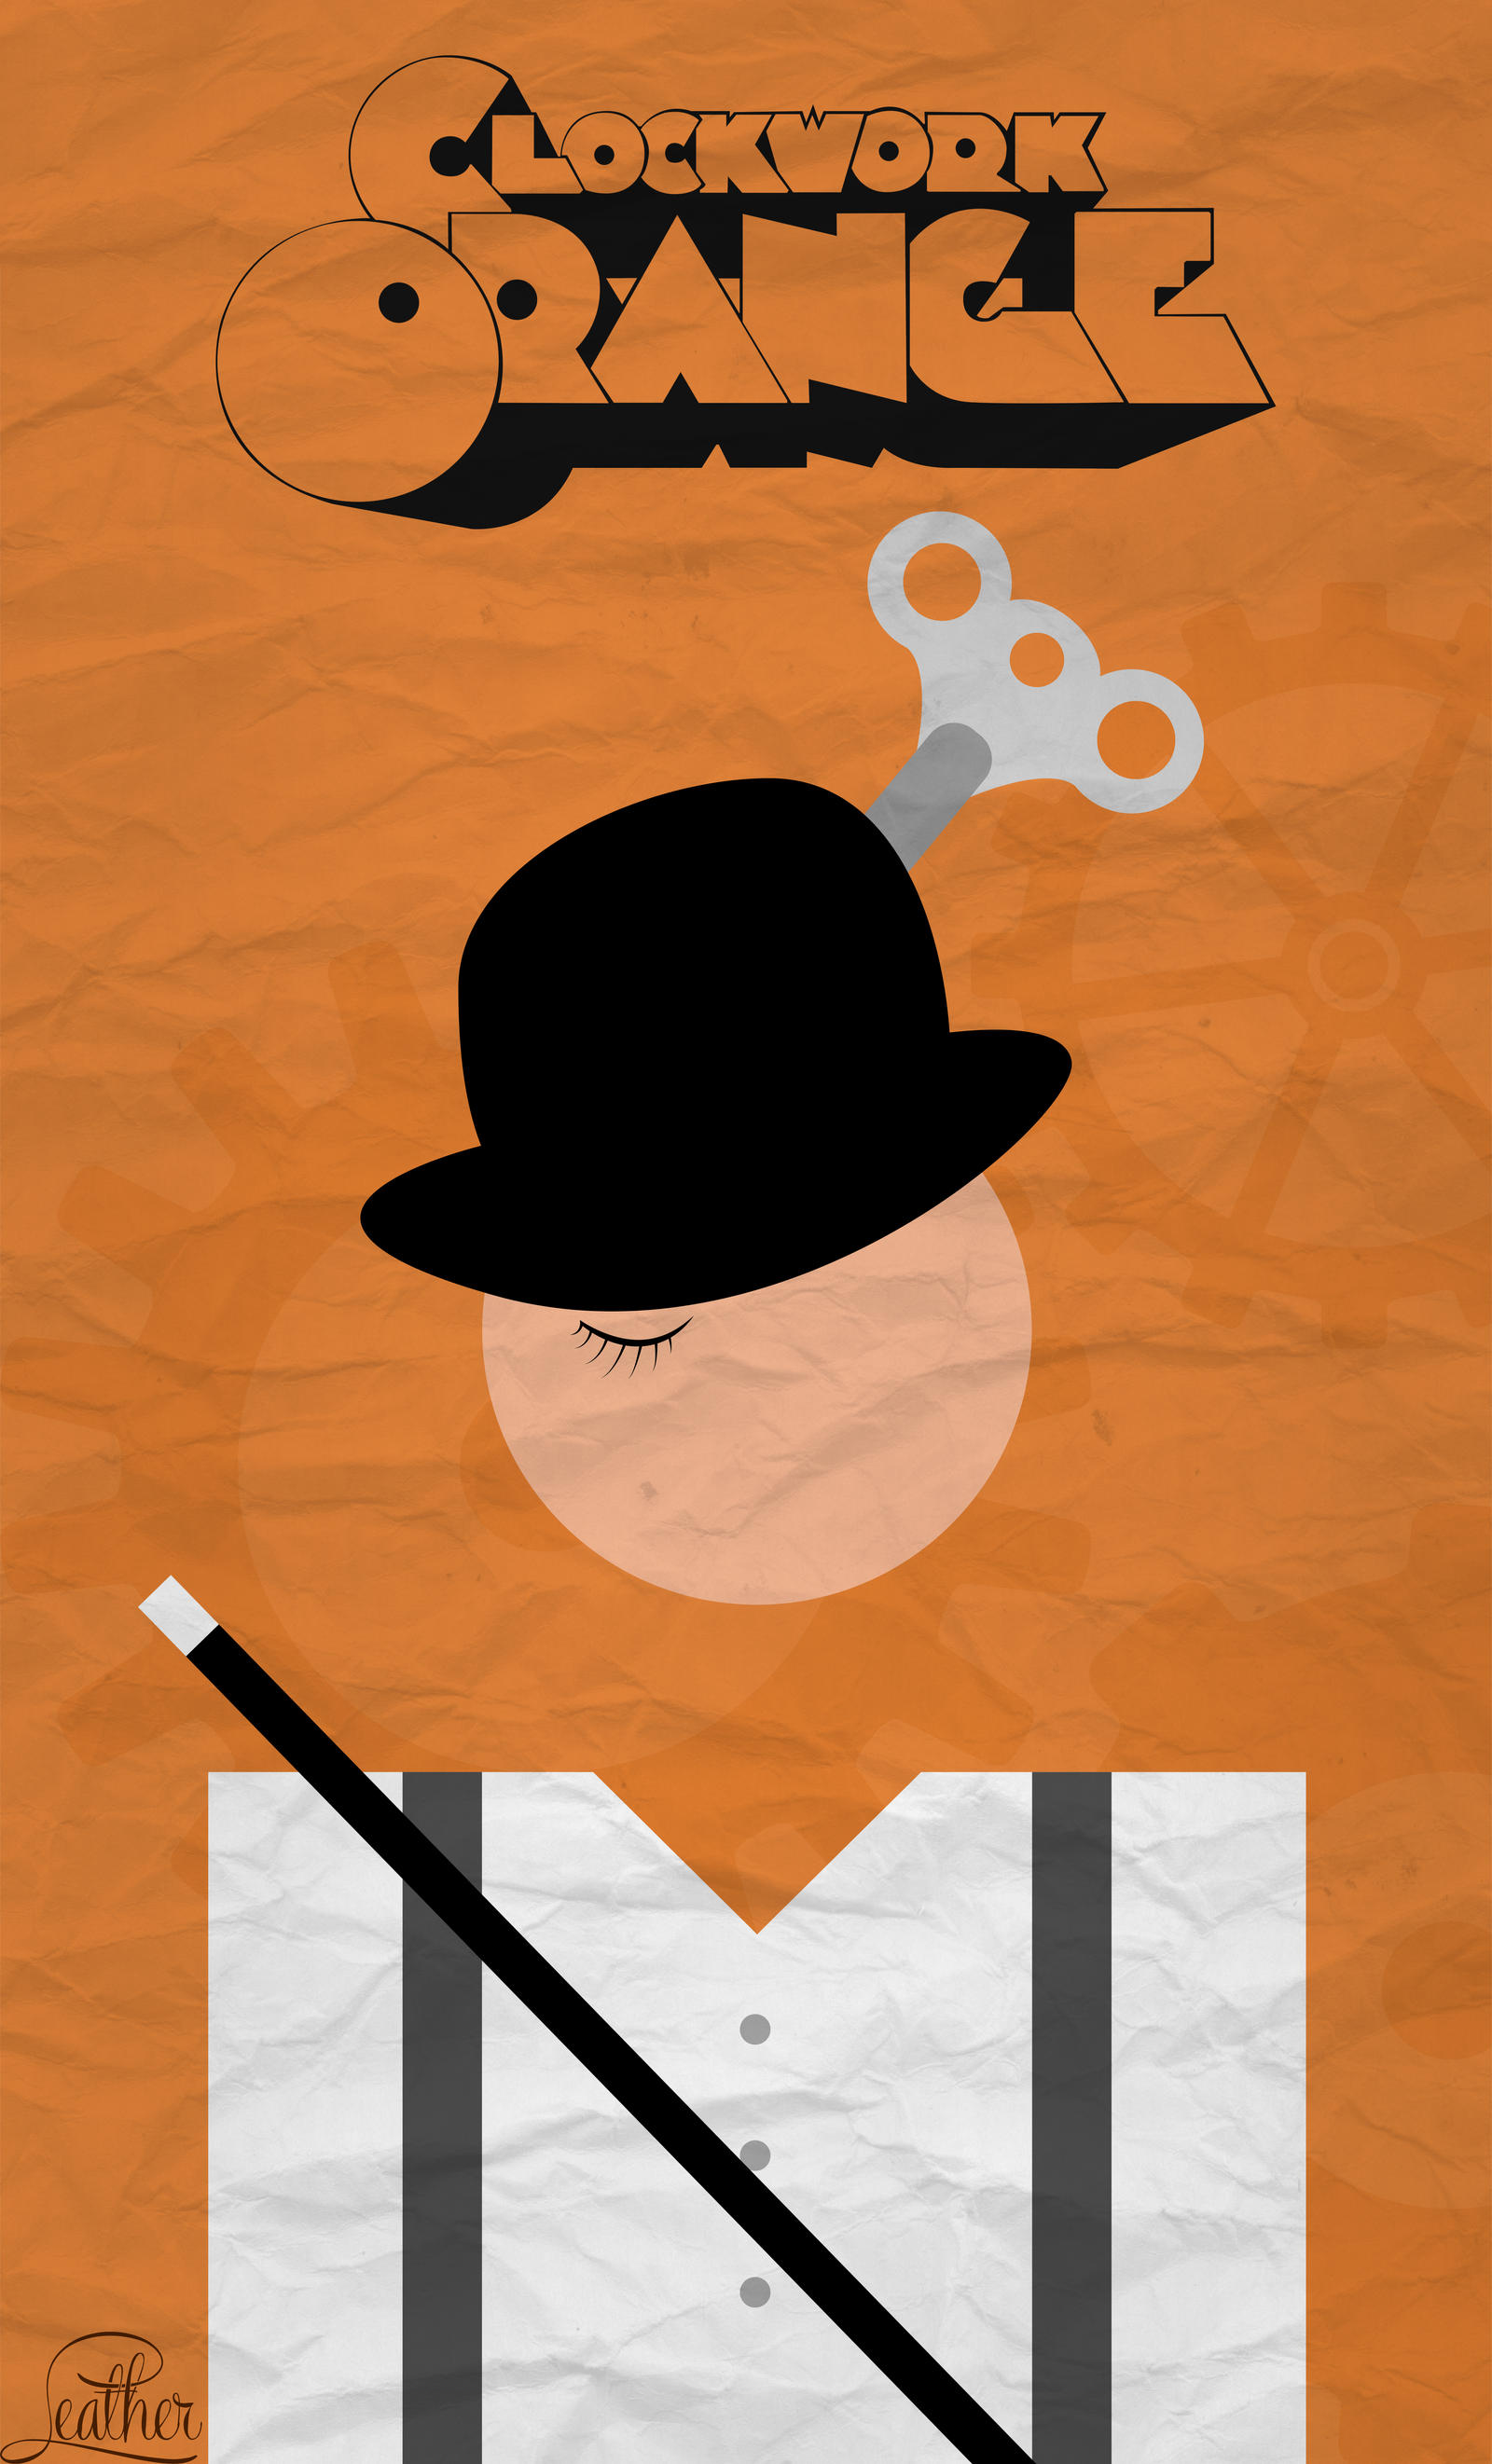 Clockwork Orange Minimalist Poster HD by ArtistWannaB3 on ... A Clockwork Orange Minimalist Poster